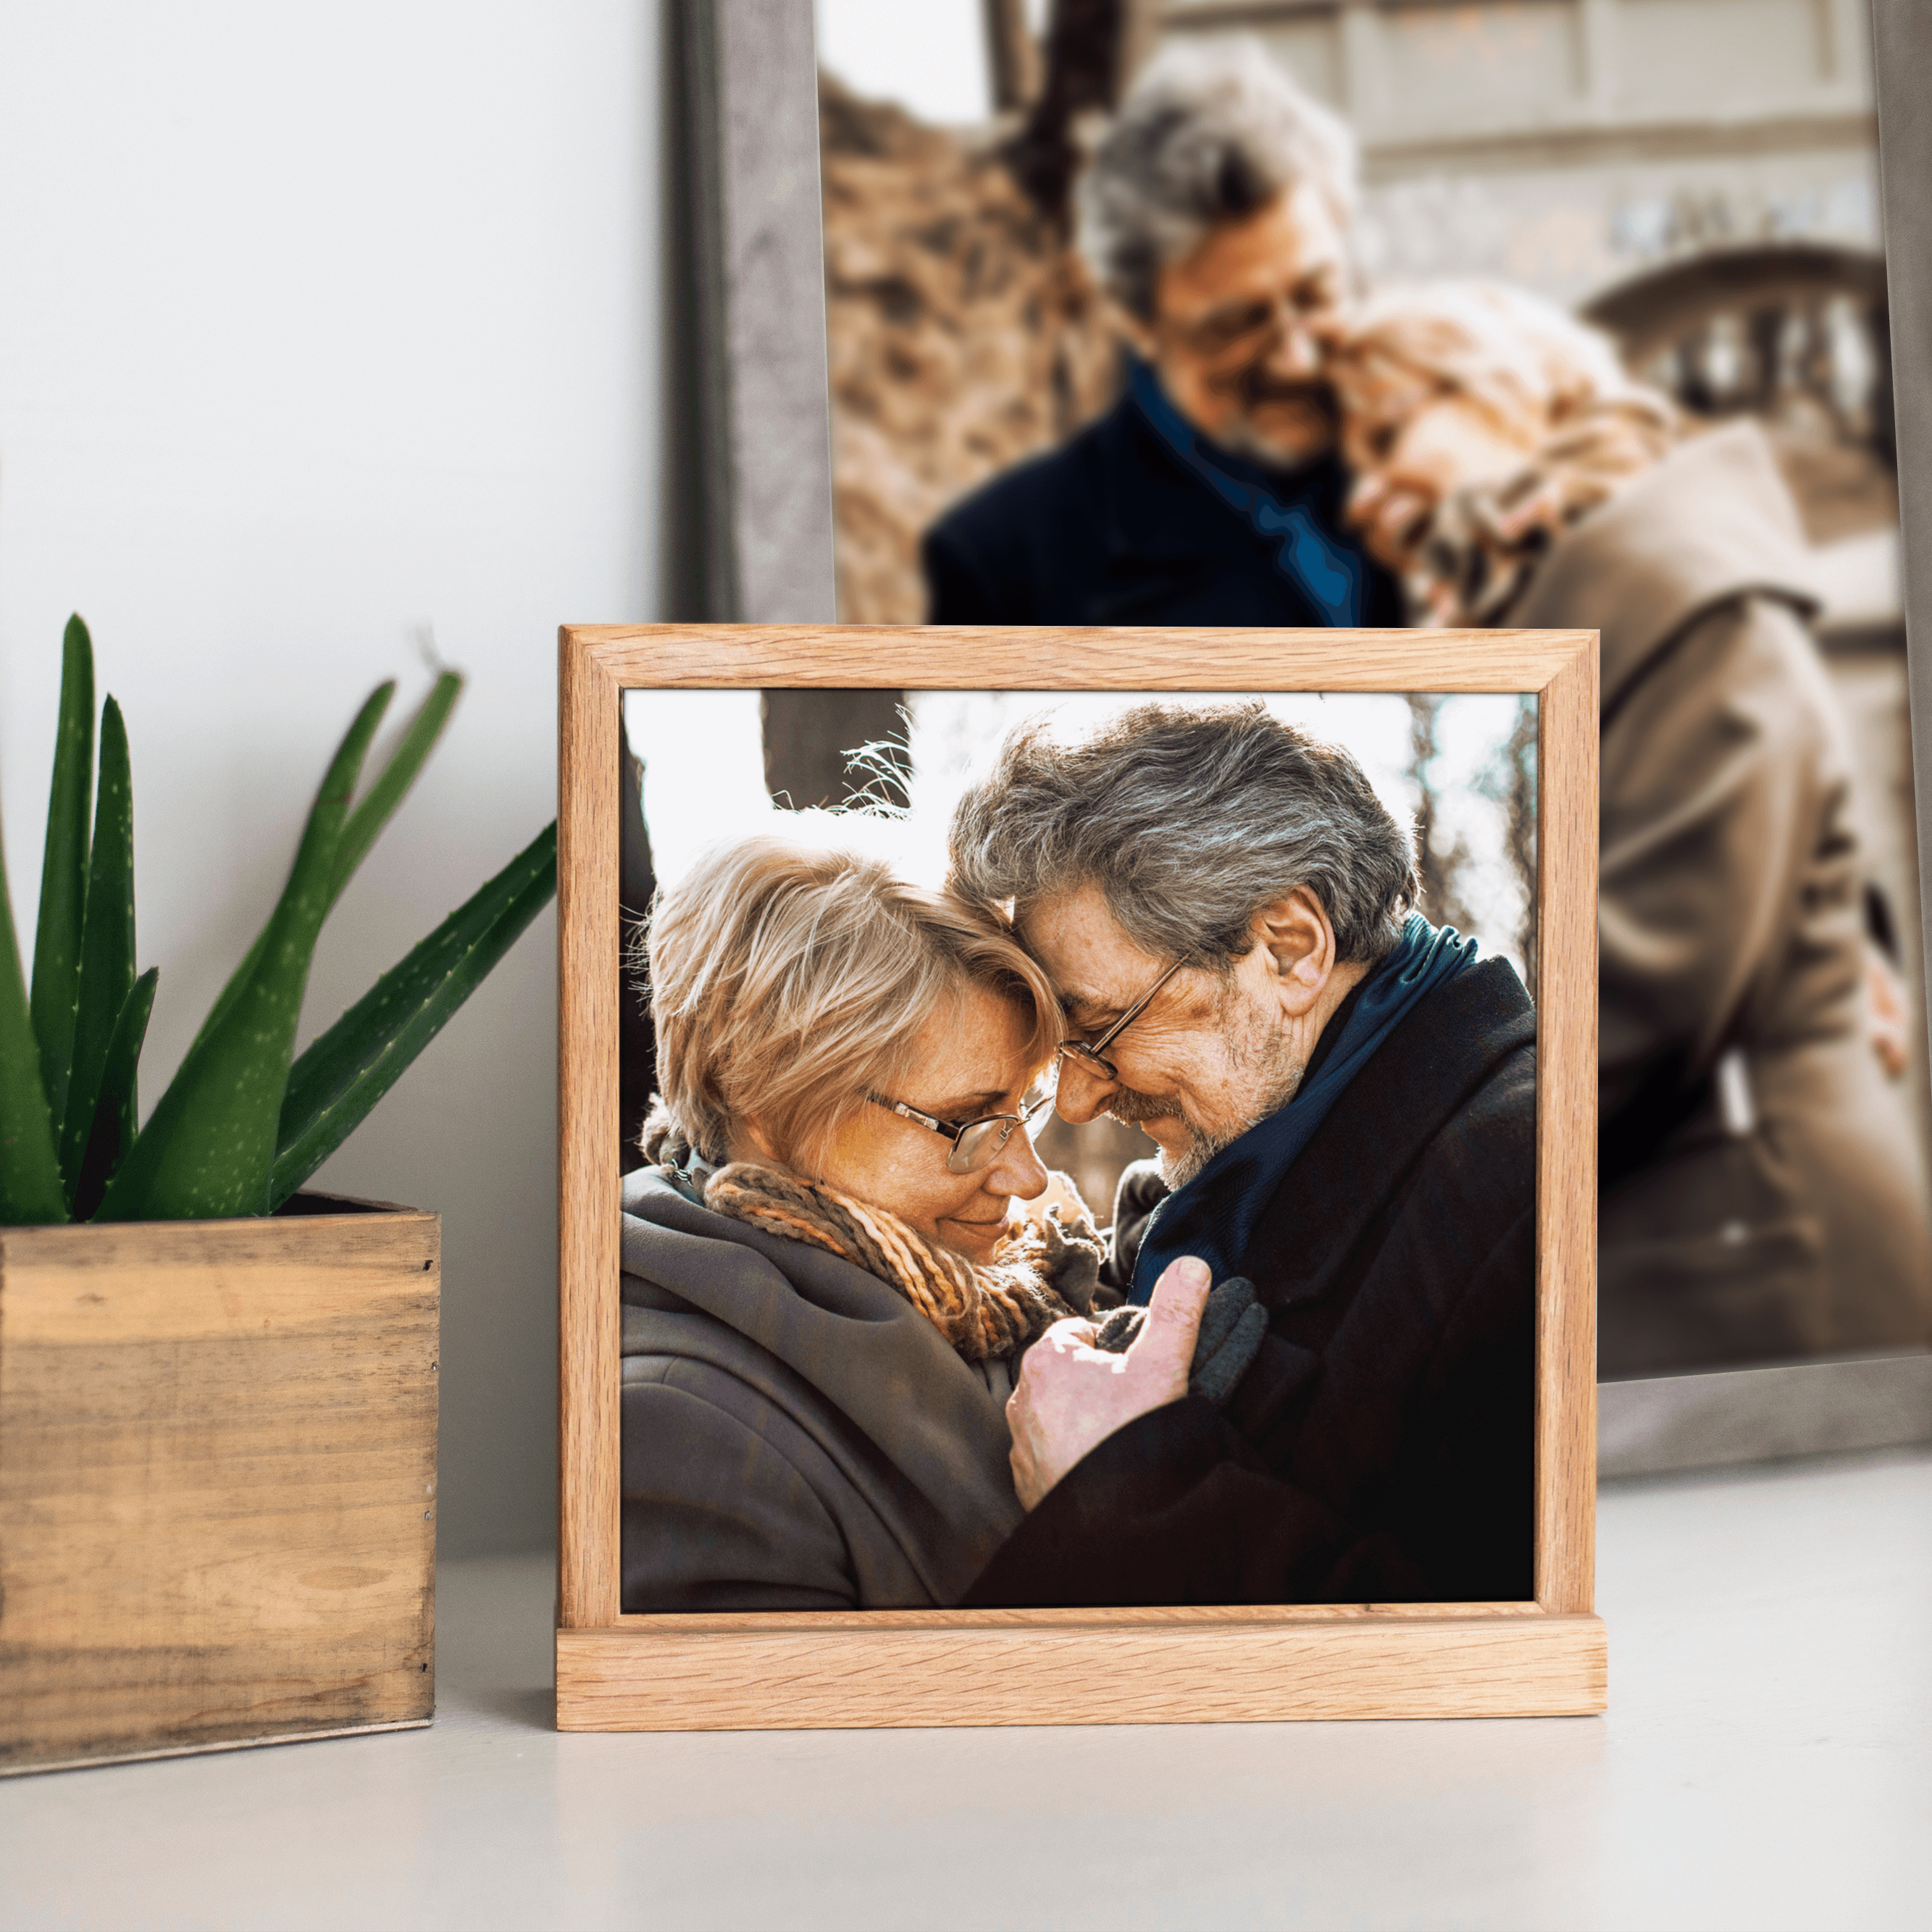 Photo prints are perfect for stocking stuffers